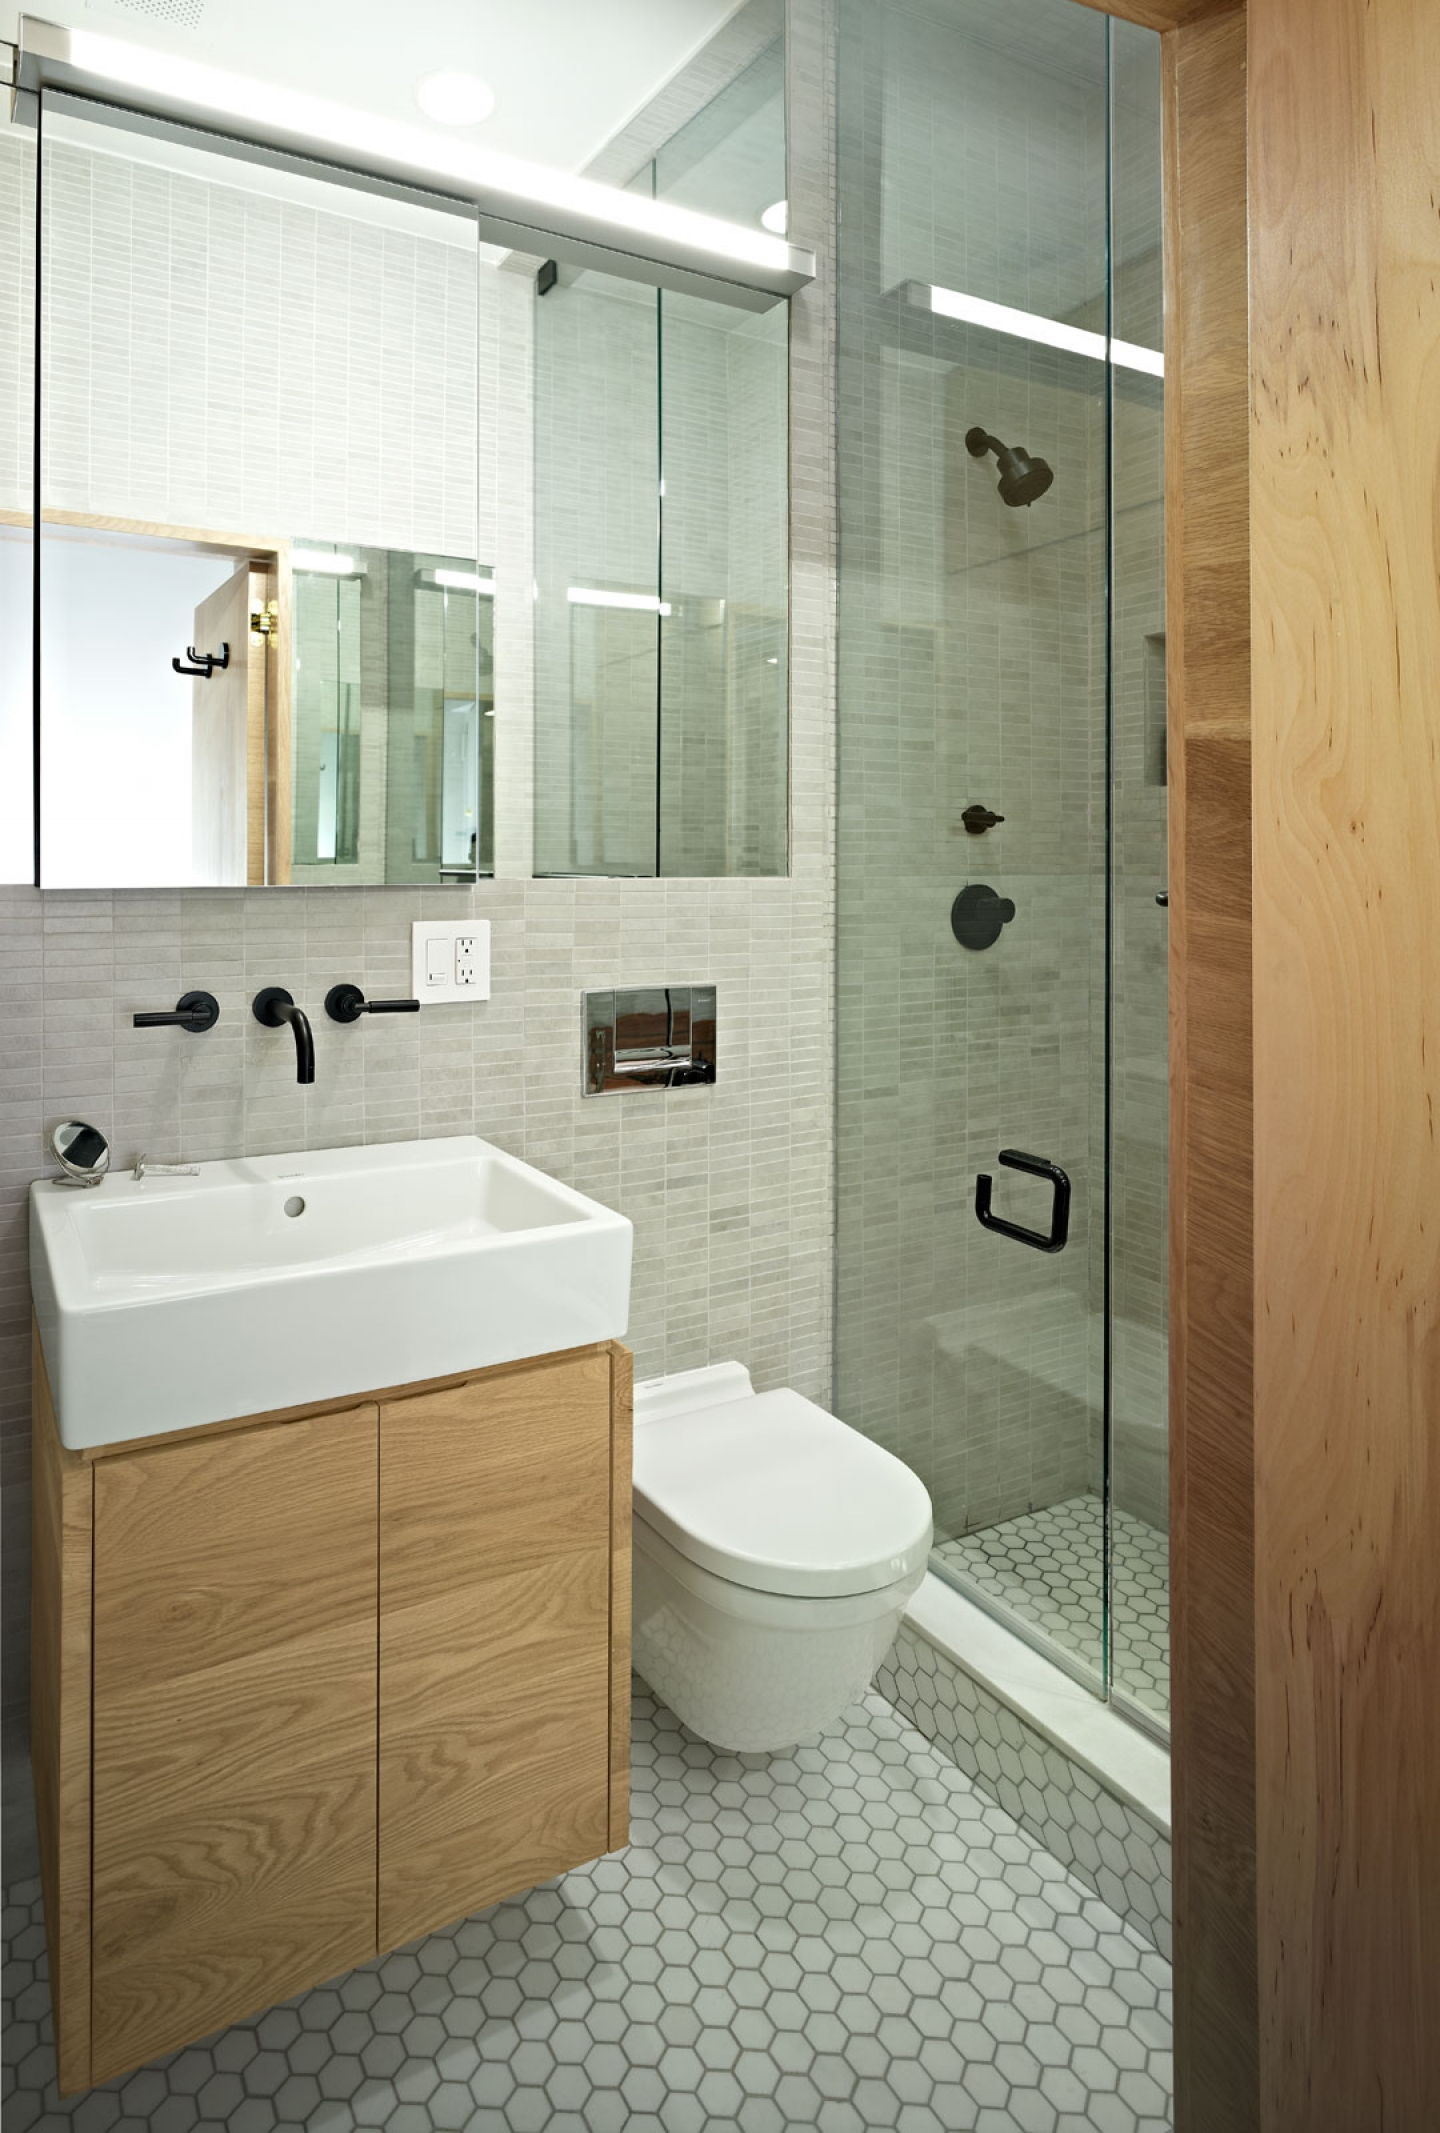 Wooden Cabinet For Small Bathroom Ideas (View 2 of 10)